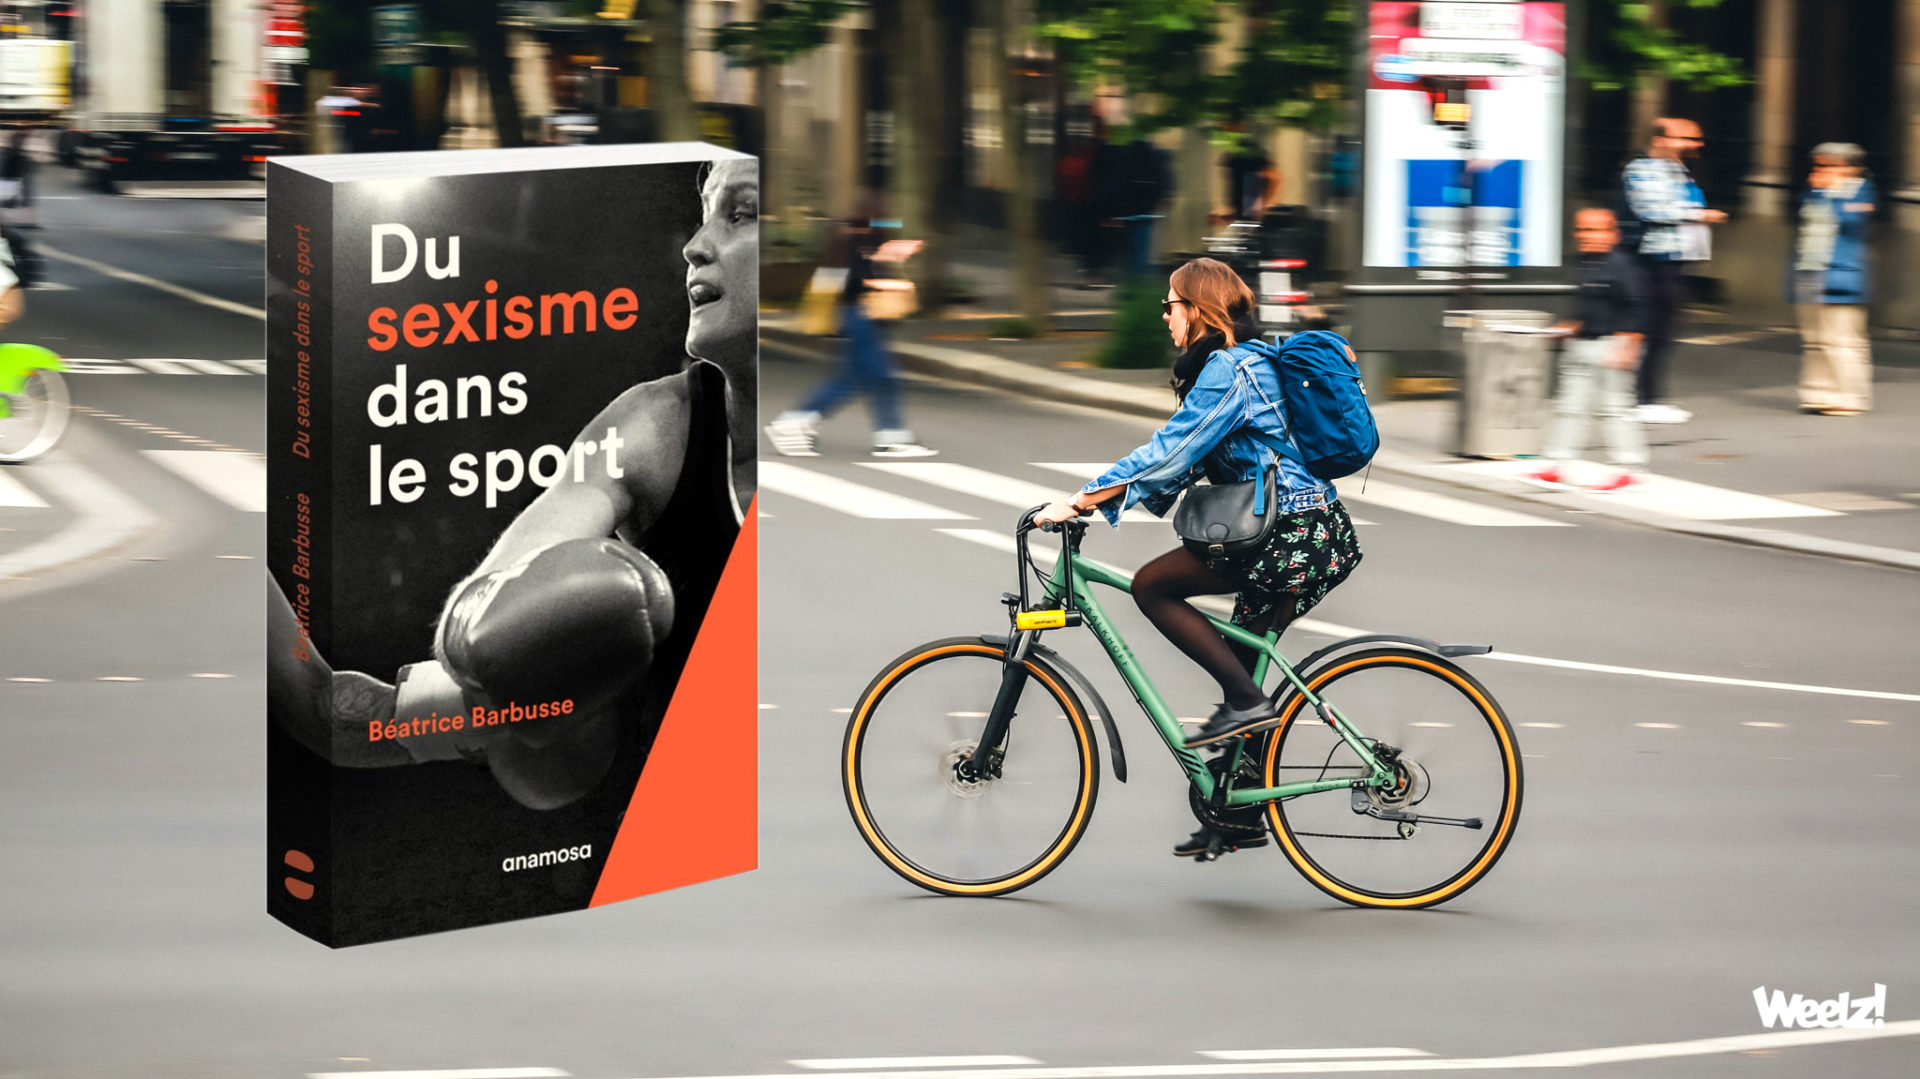 Weelz Velo Cycliste Urbain Paris 2020 4331 Sexisme Transport